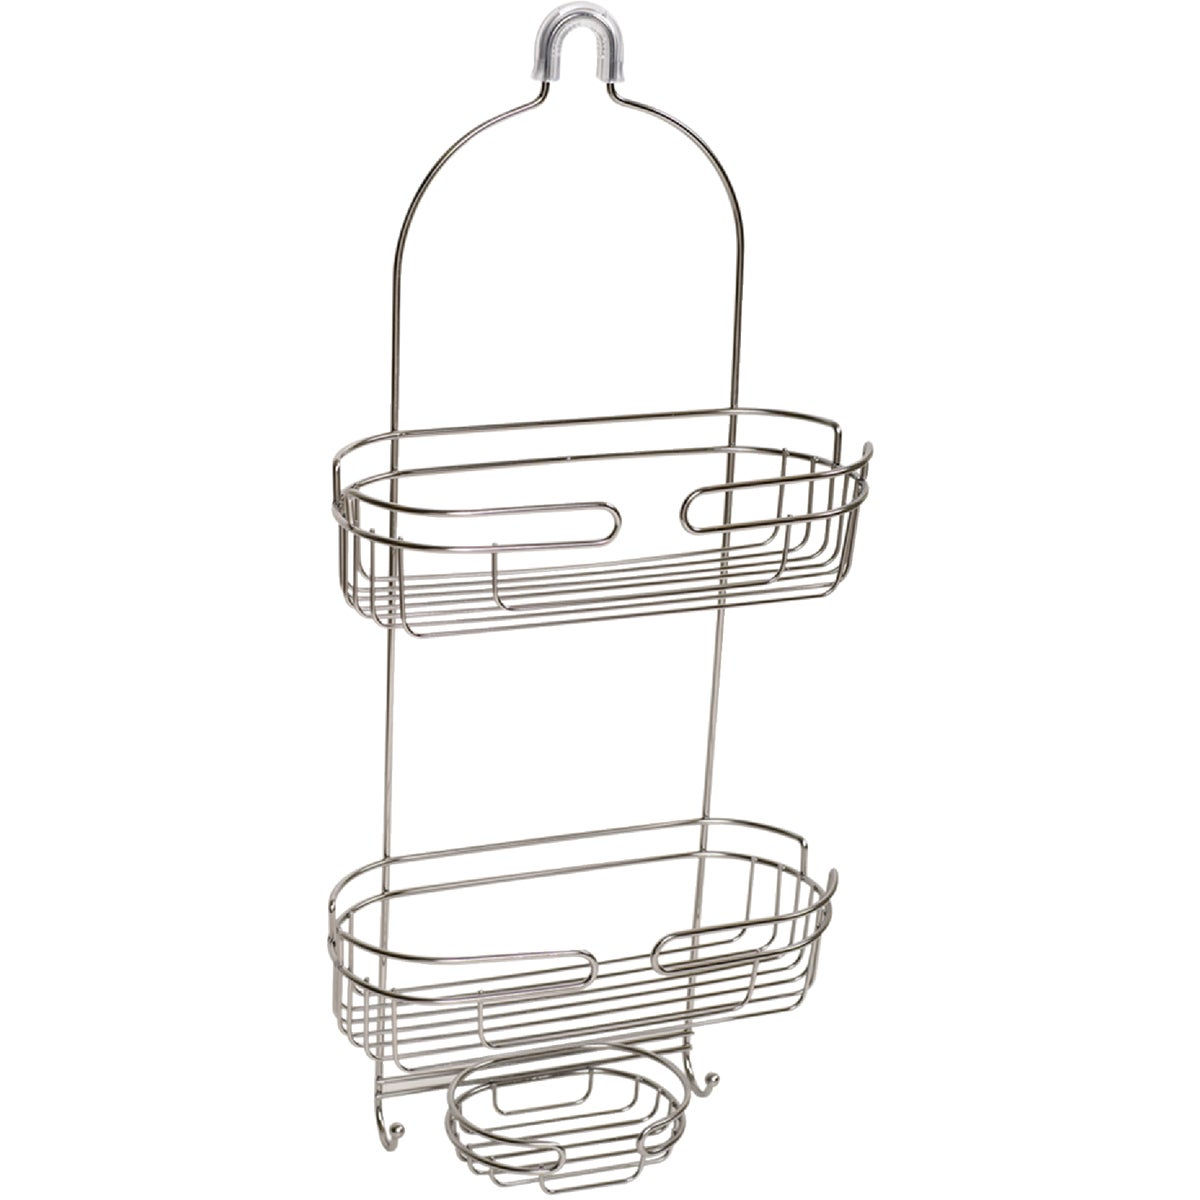 SS OVER-THE-SHOWER CADDY